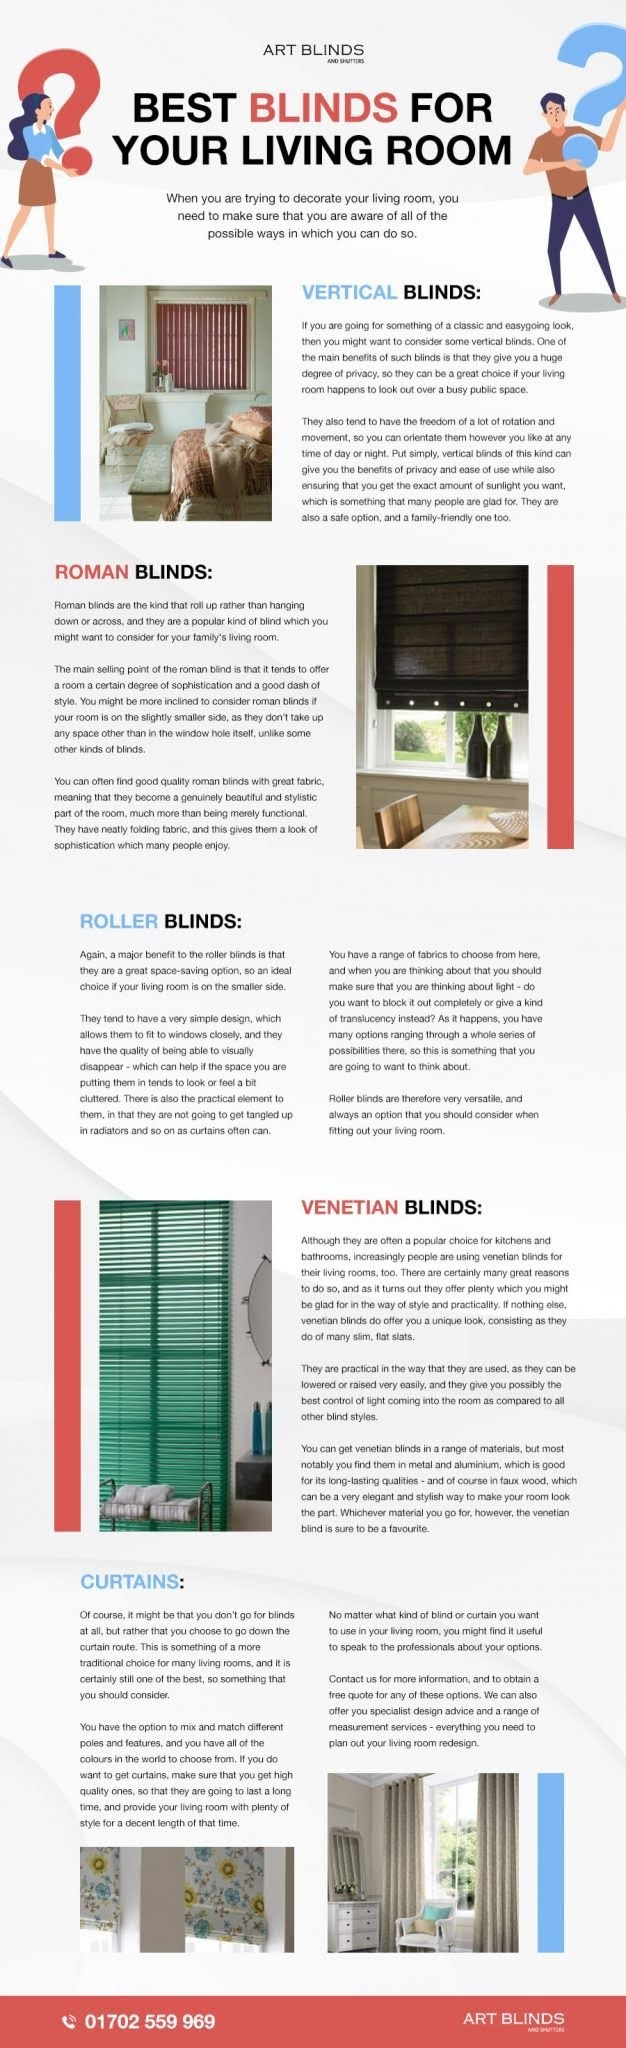 Best Blinds For Your Living Room #infographic